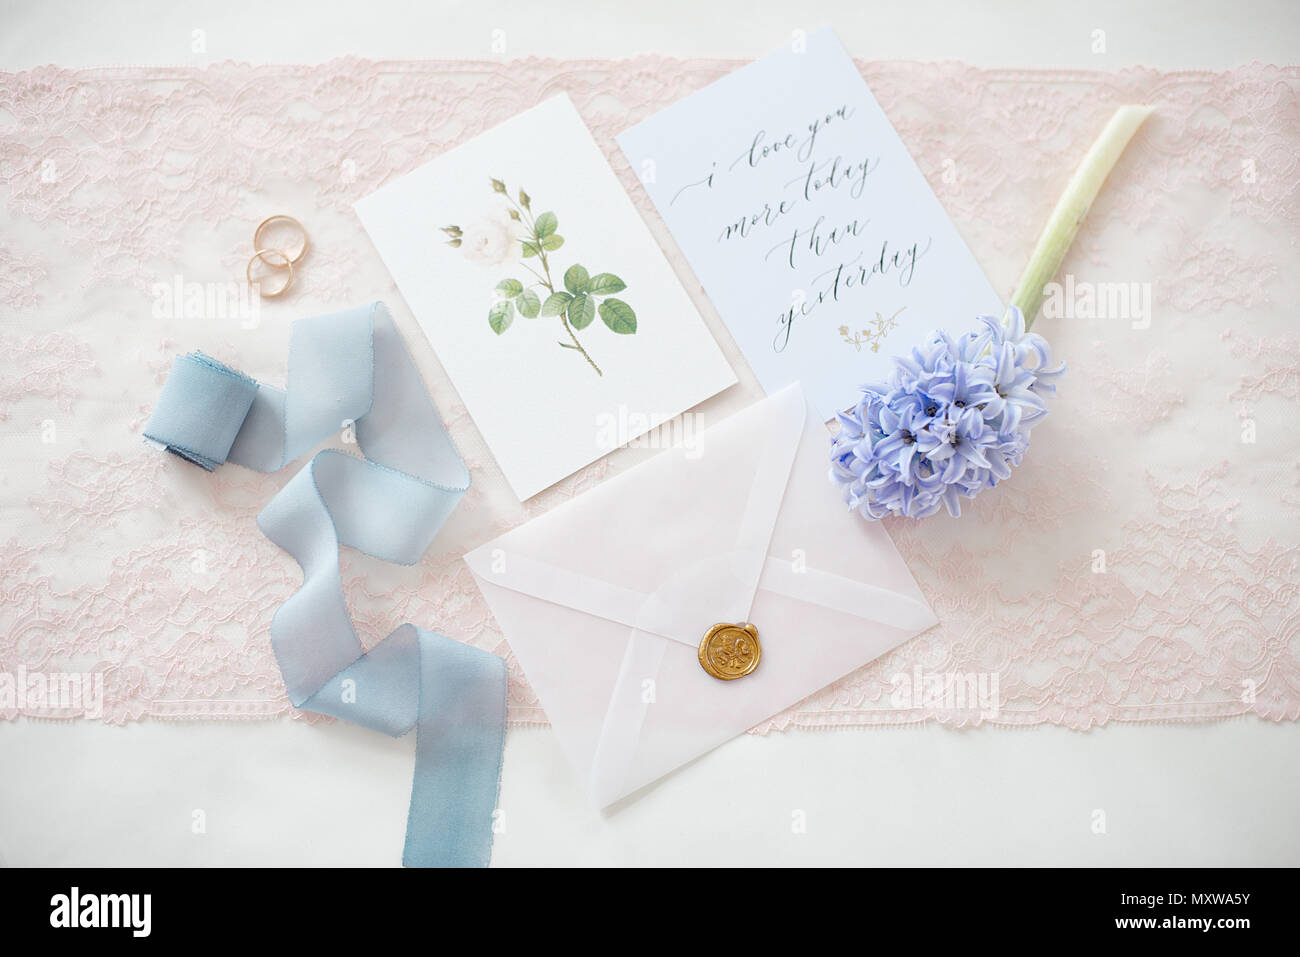 Wedding invitation card as a decorated letter with flowers and wedding invitation card as a decorated letter with flowers and ribbons top view m4hsunfo